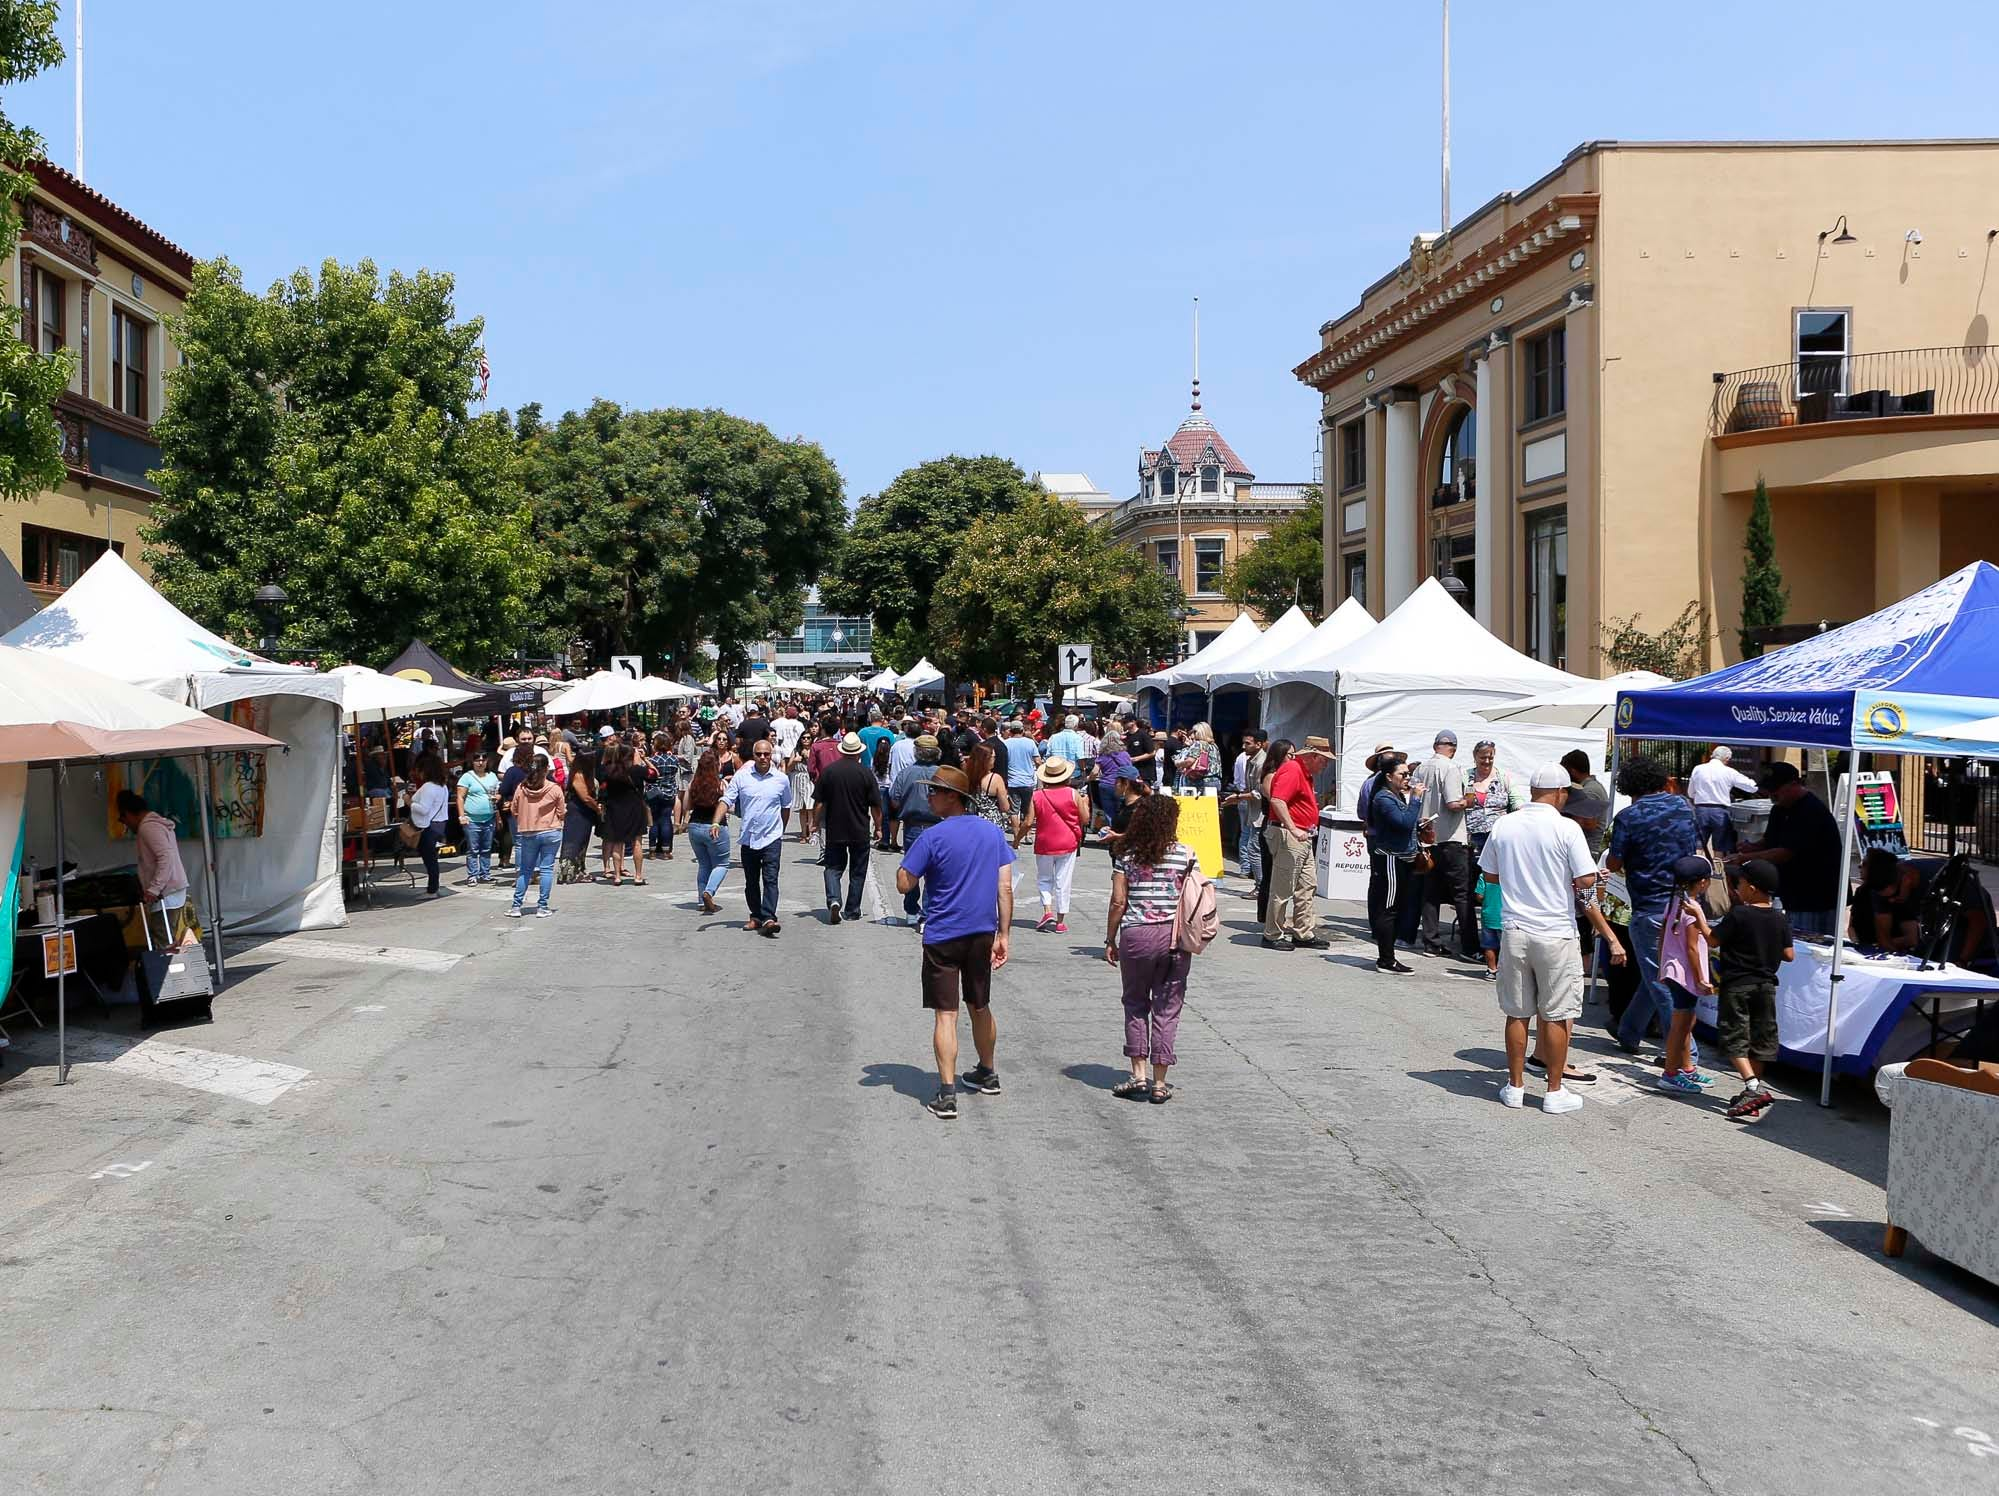 Attendees walk during the 2018 Salinas Valley Food and Wine Festival which takes place on Main Street in Old Town Salinas on Saturday, August 11, 2018.